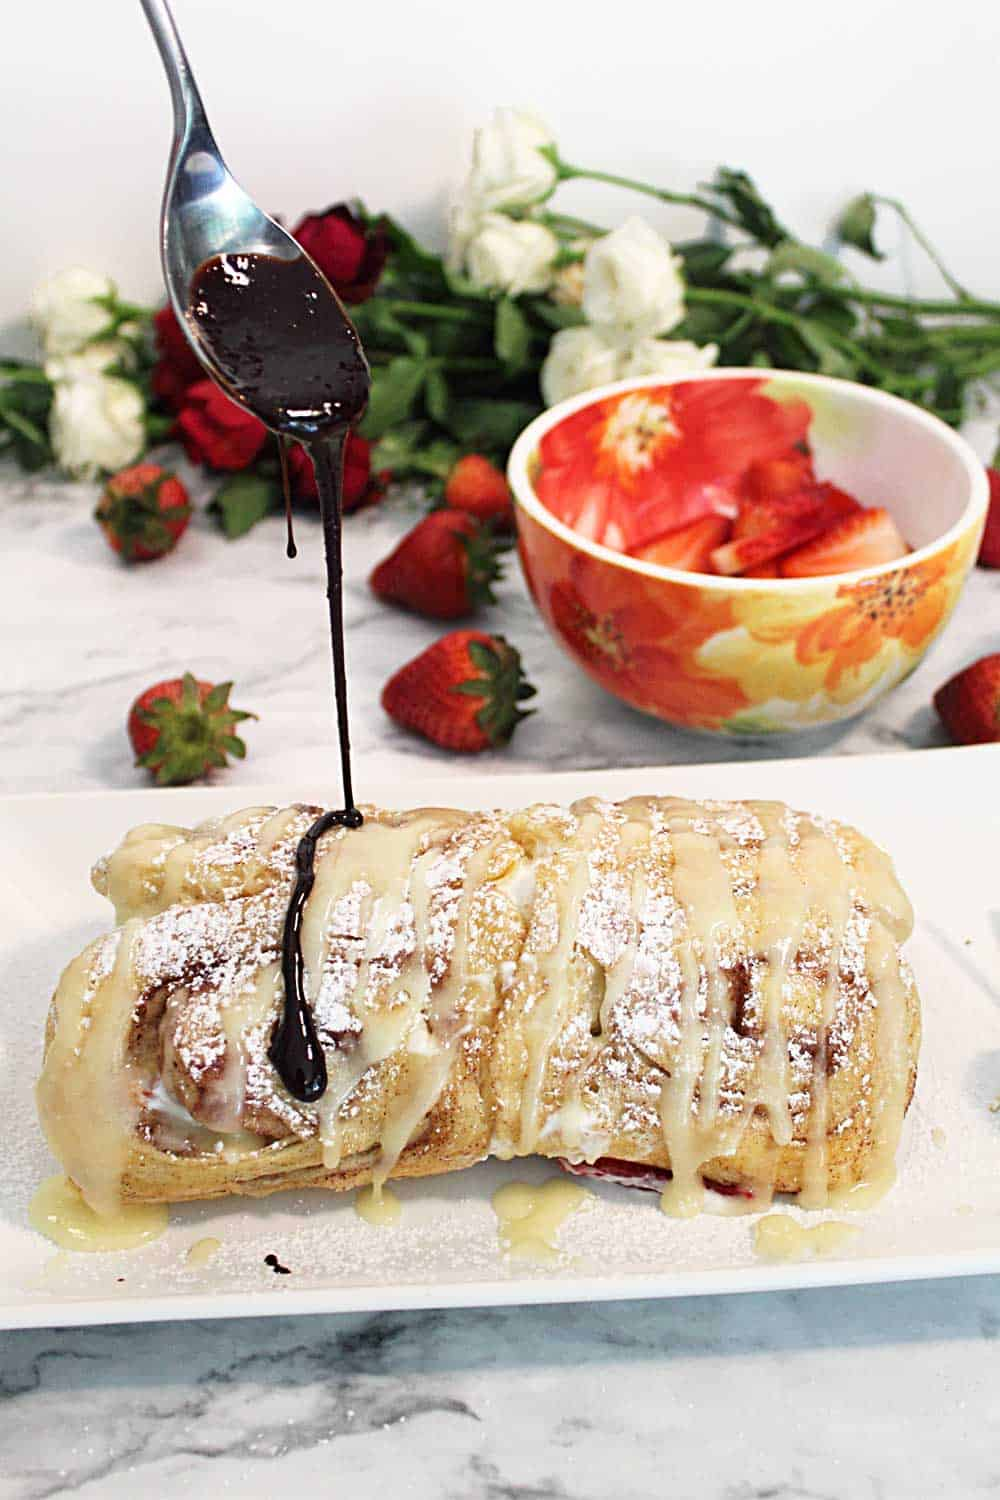 Drizzling chocolate on strawberry cinnamon roll